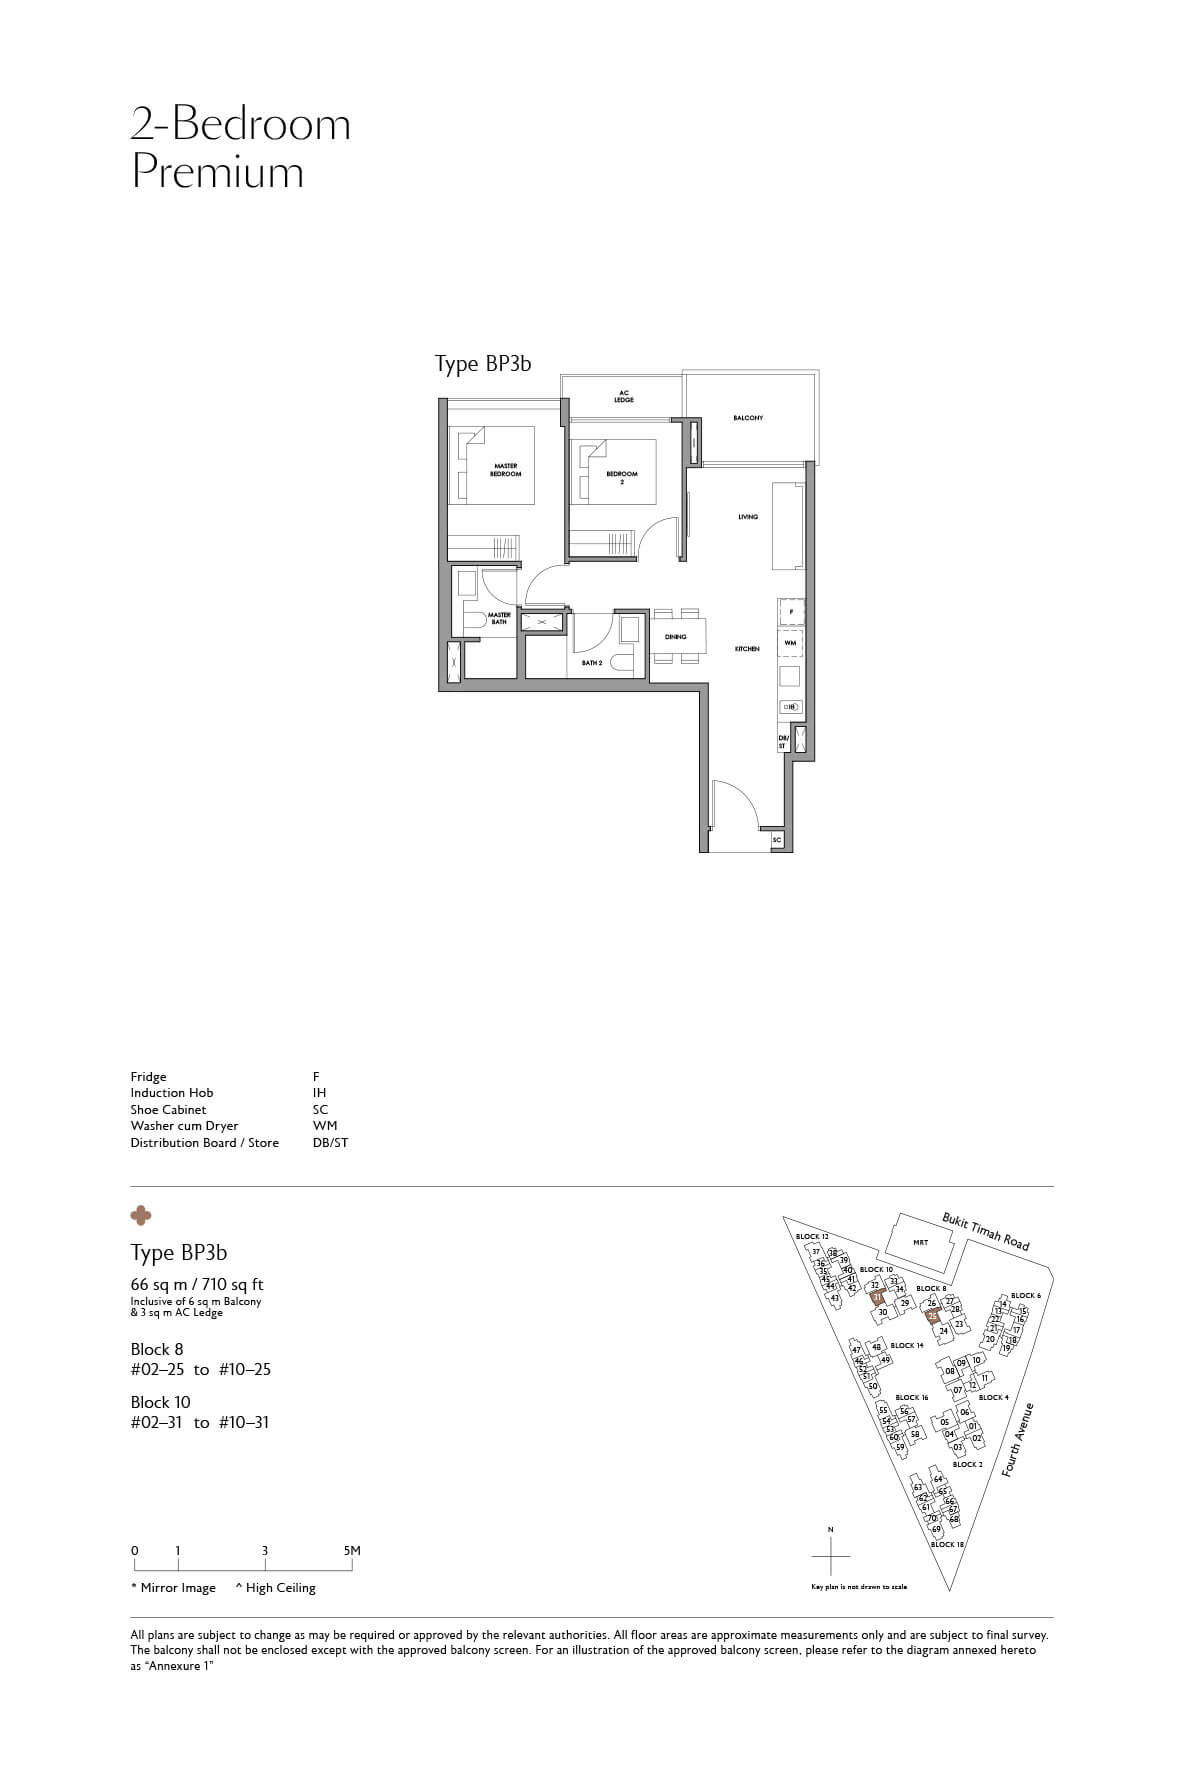 Fourth Avenue Residences Floor Plan 2 Bedroom Premium Type BP3b